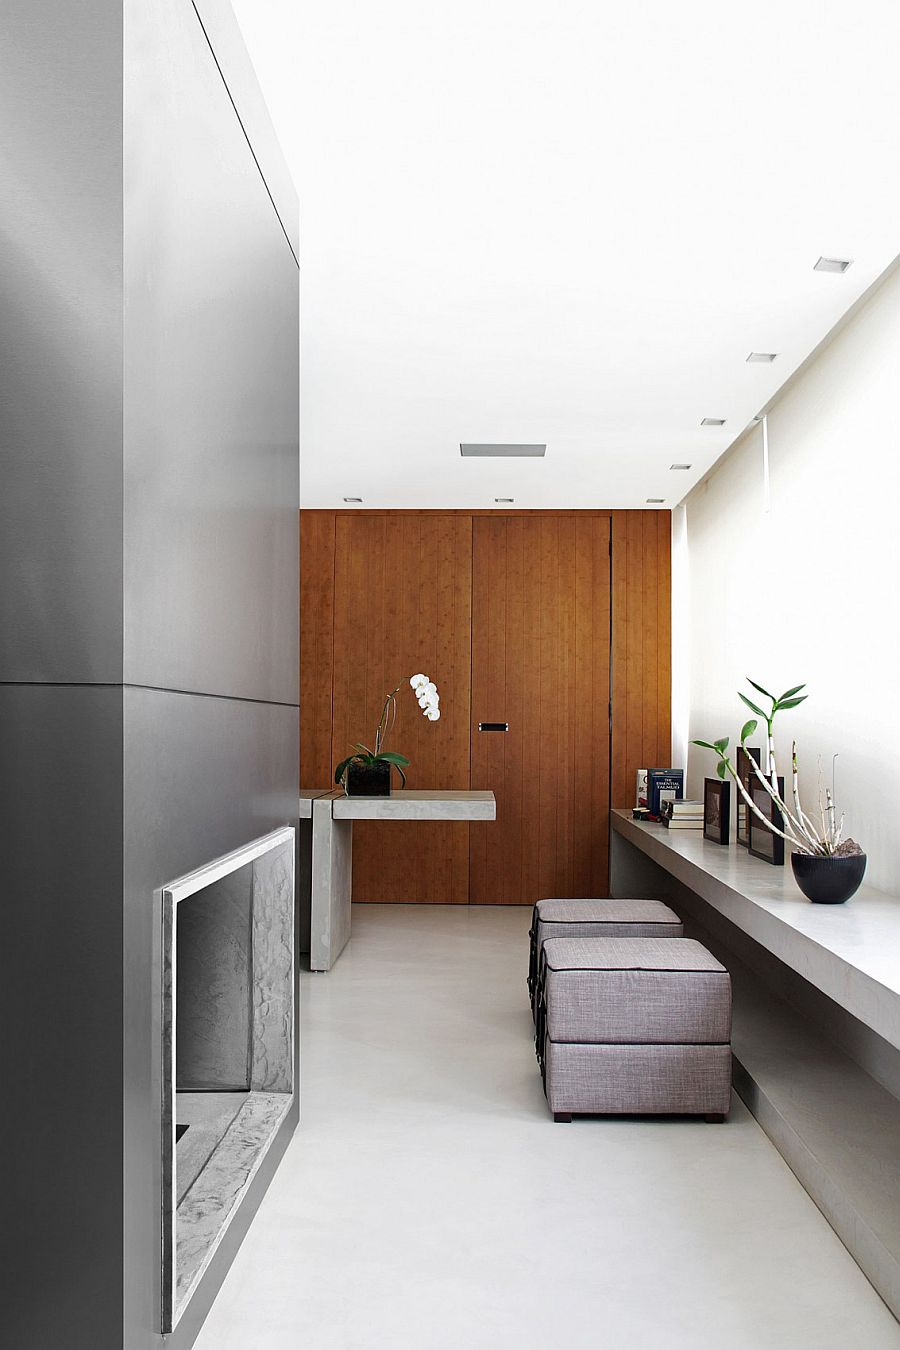 View in gallery wooden doors and wall surfaces bring warmth to the modern minimal home